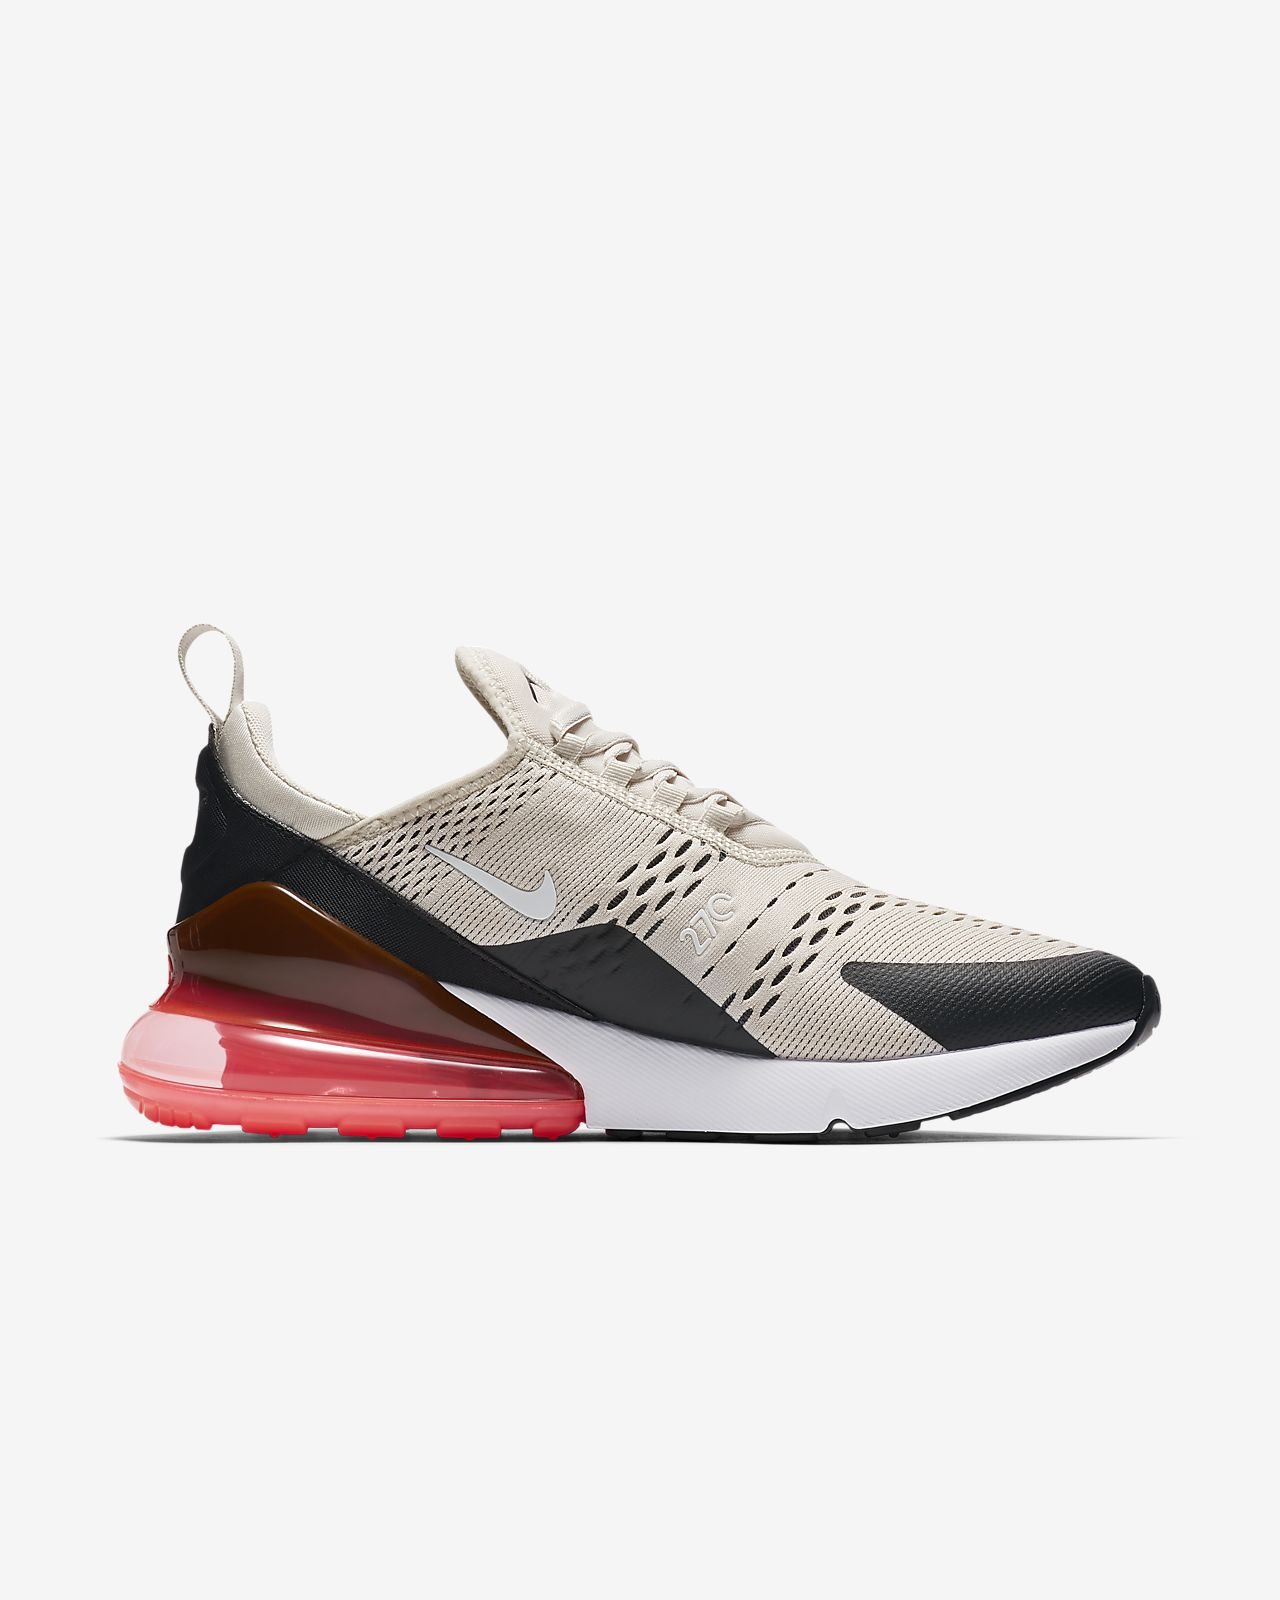 Triple C Auto >> Nike Air Max 270 Men's Shoe. Nike.com GB